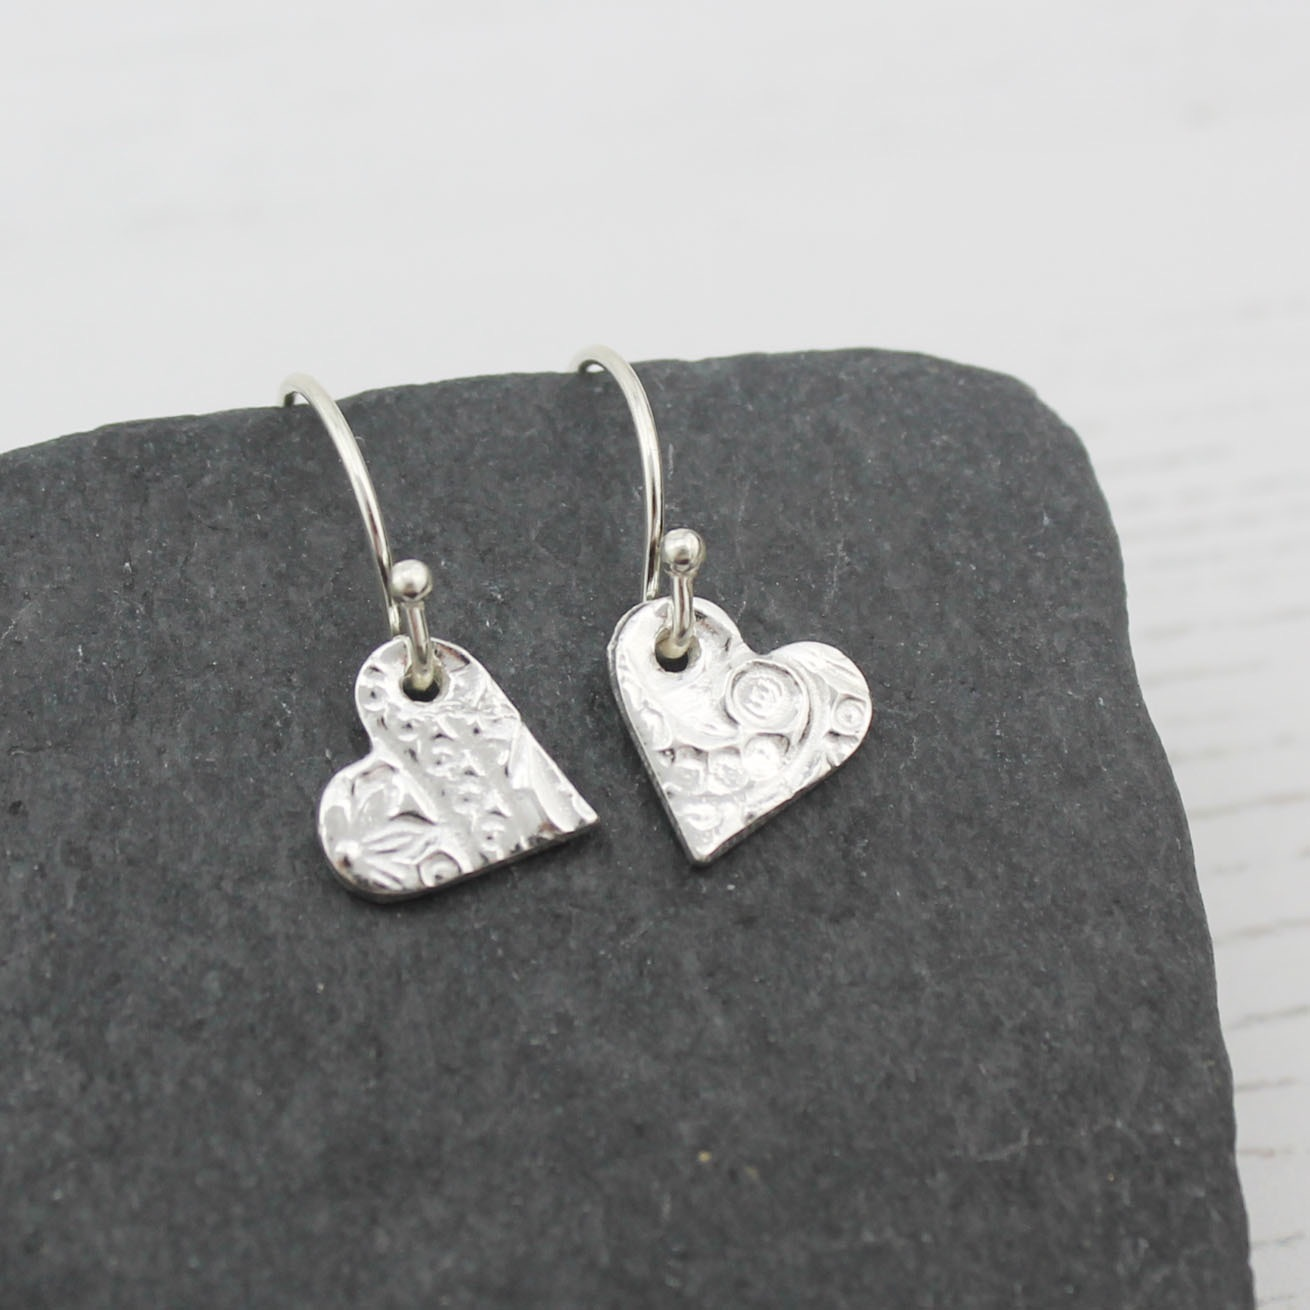 Textured Silver Heart Earrings by Lucy Kemp